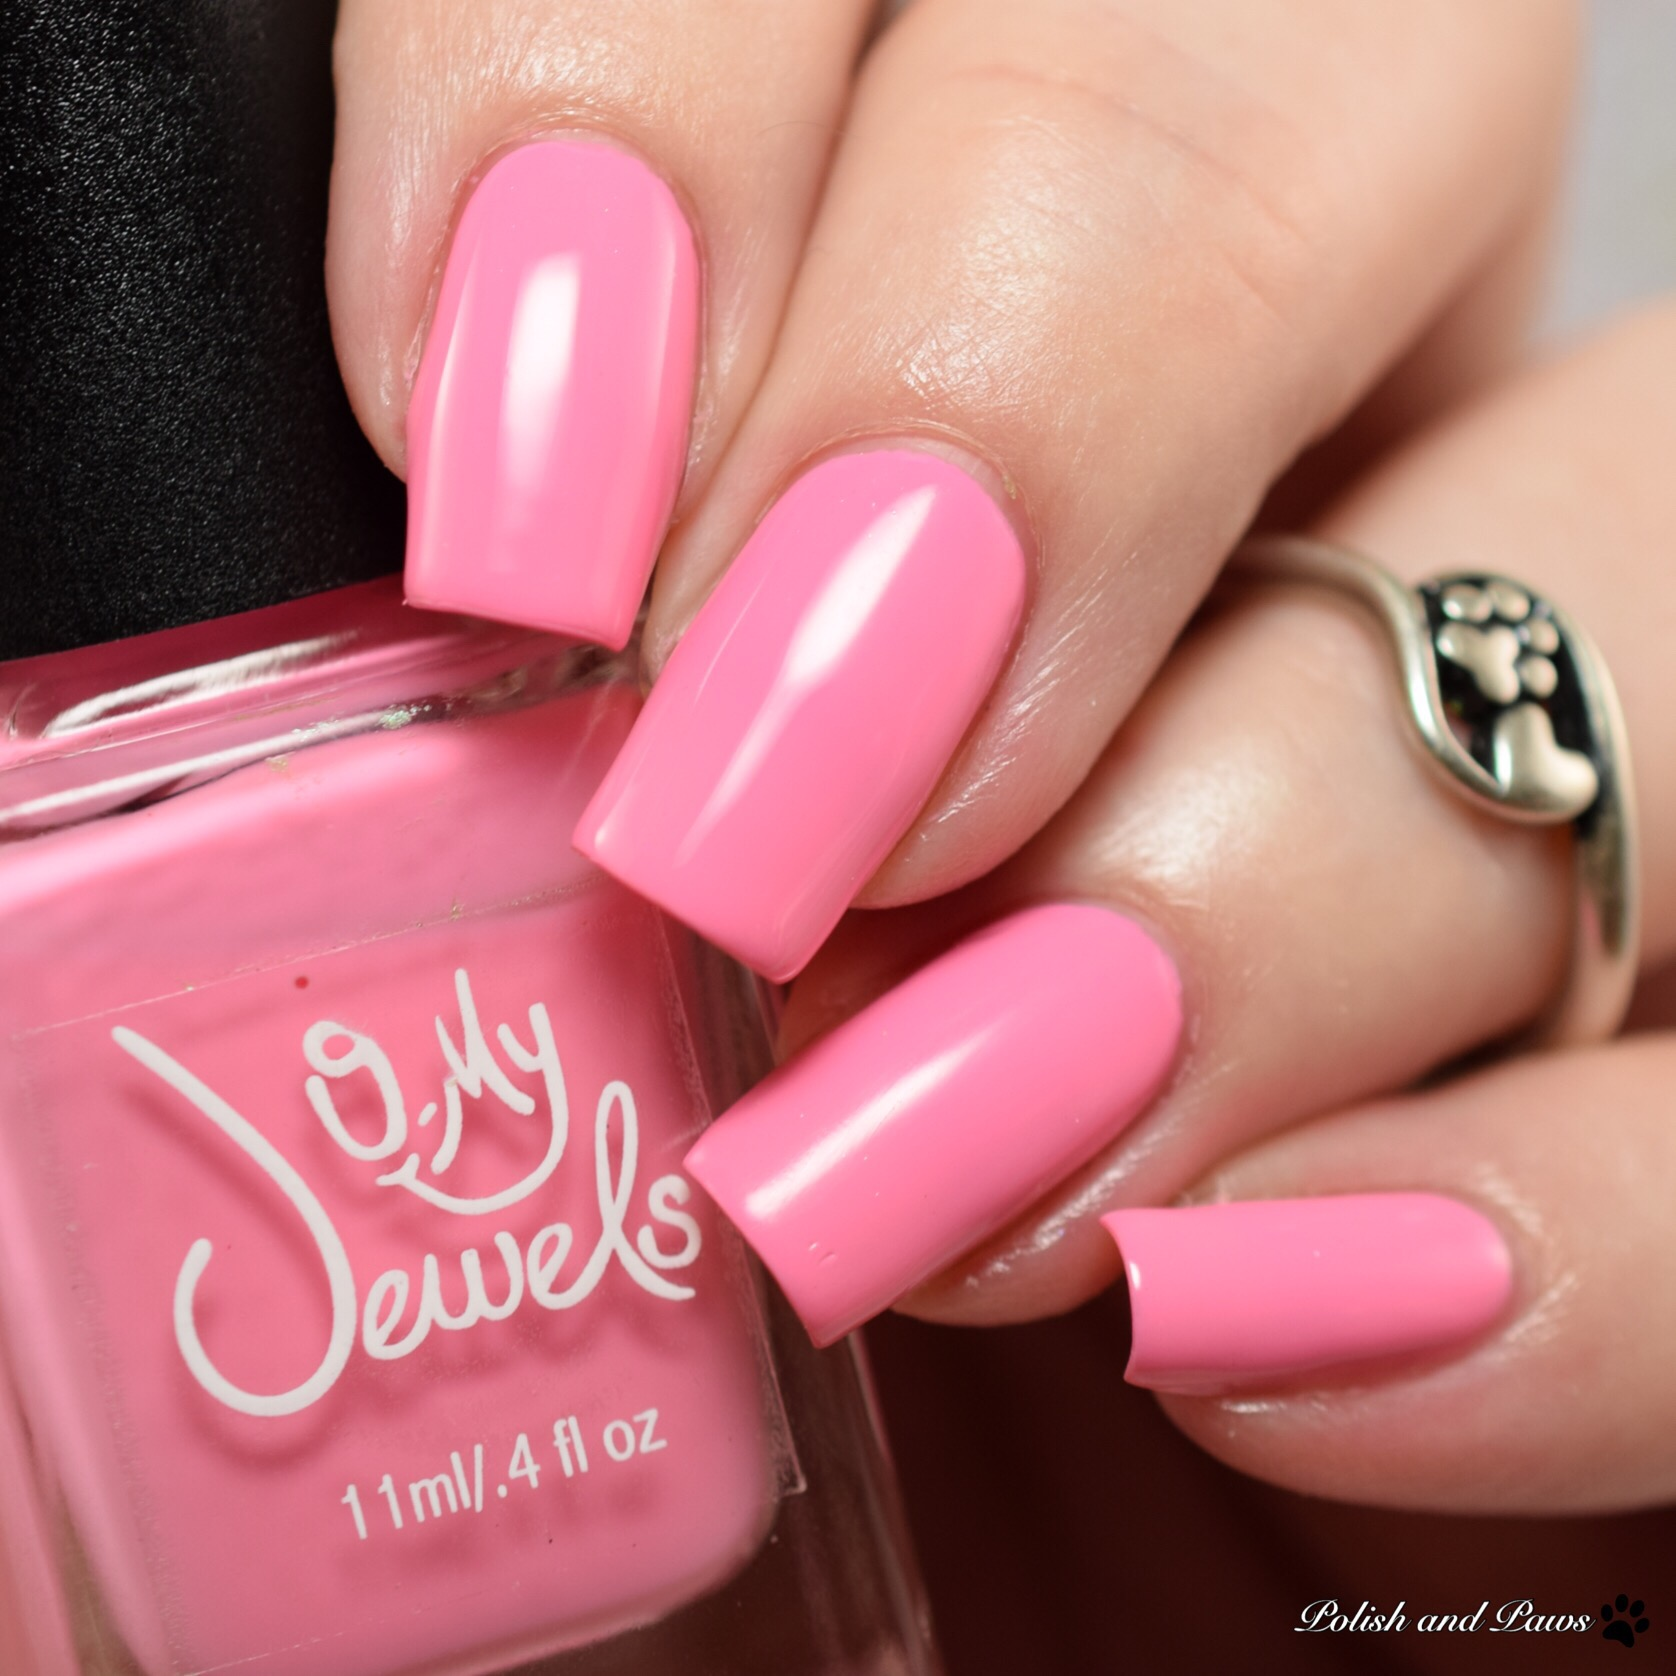 O\' My Jewels Swatch and Review | Polish and Paws